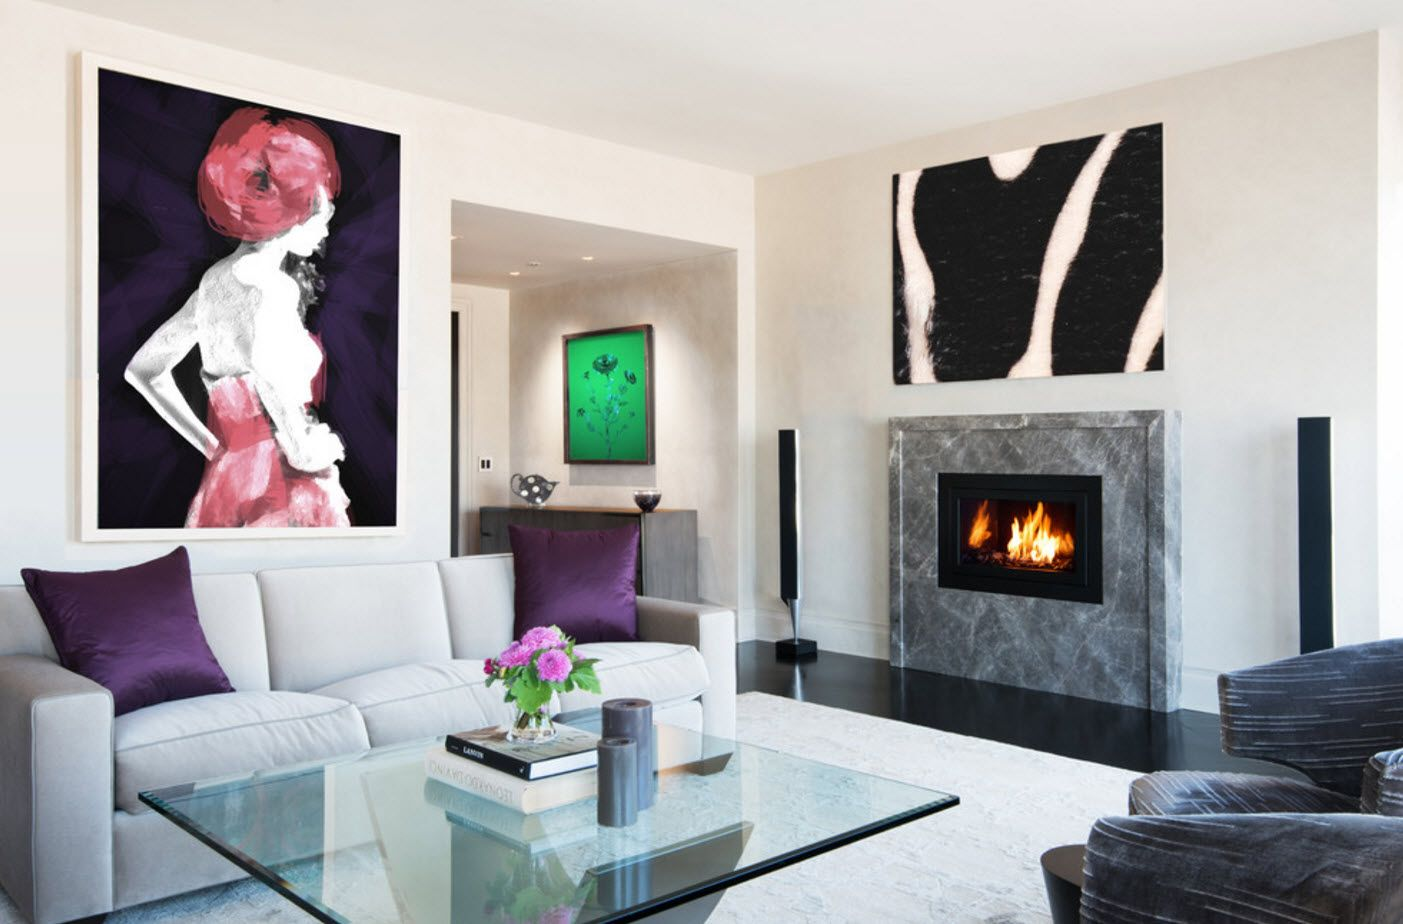 Impressionistic pictures to dilute the interior